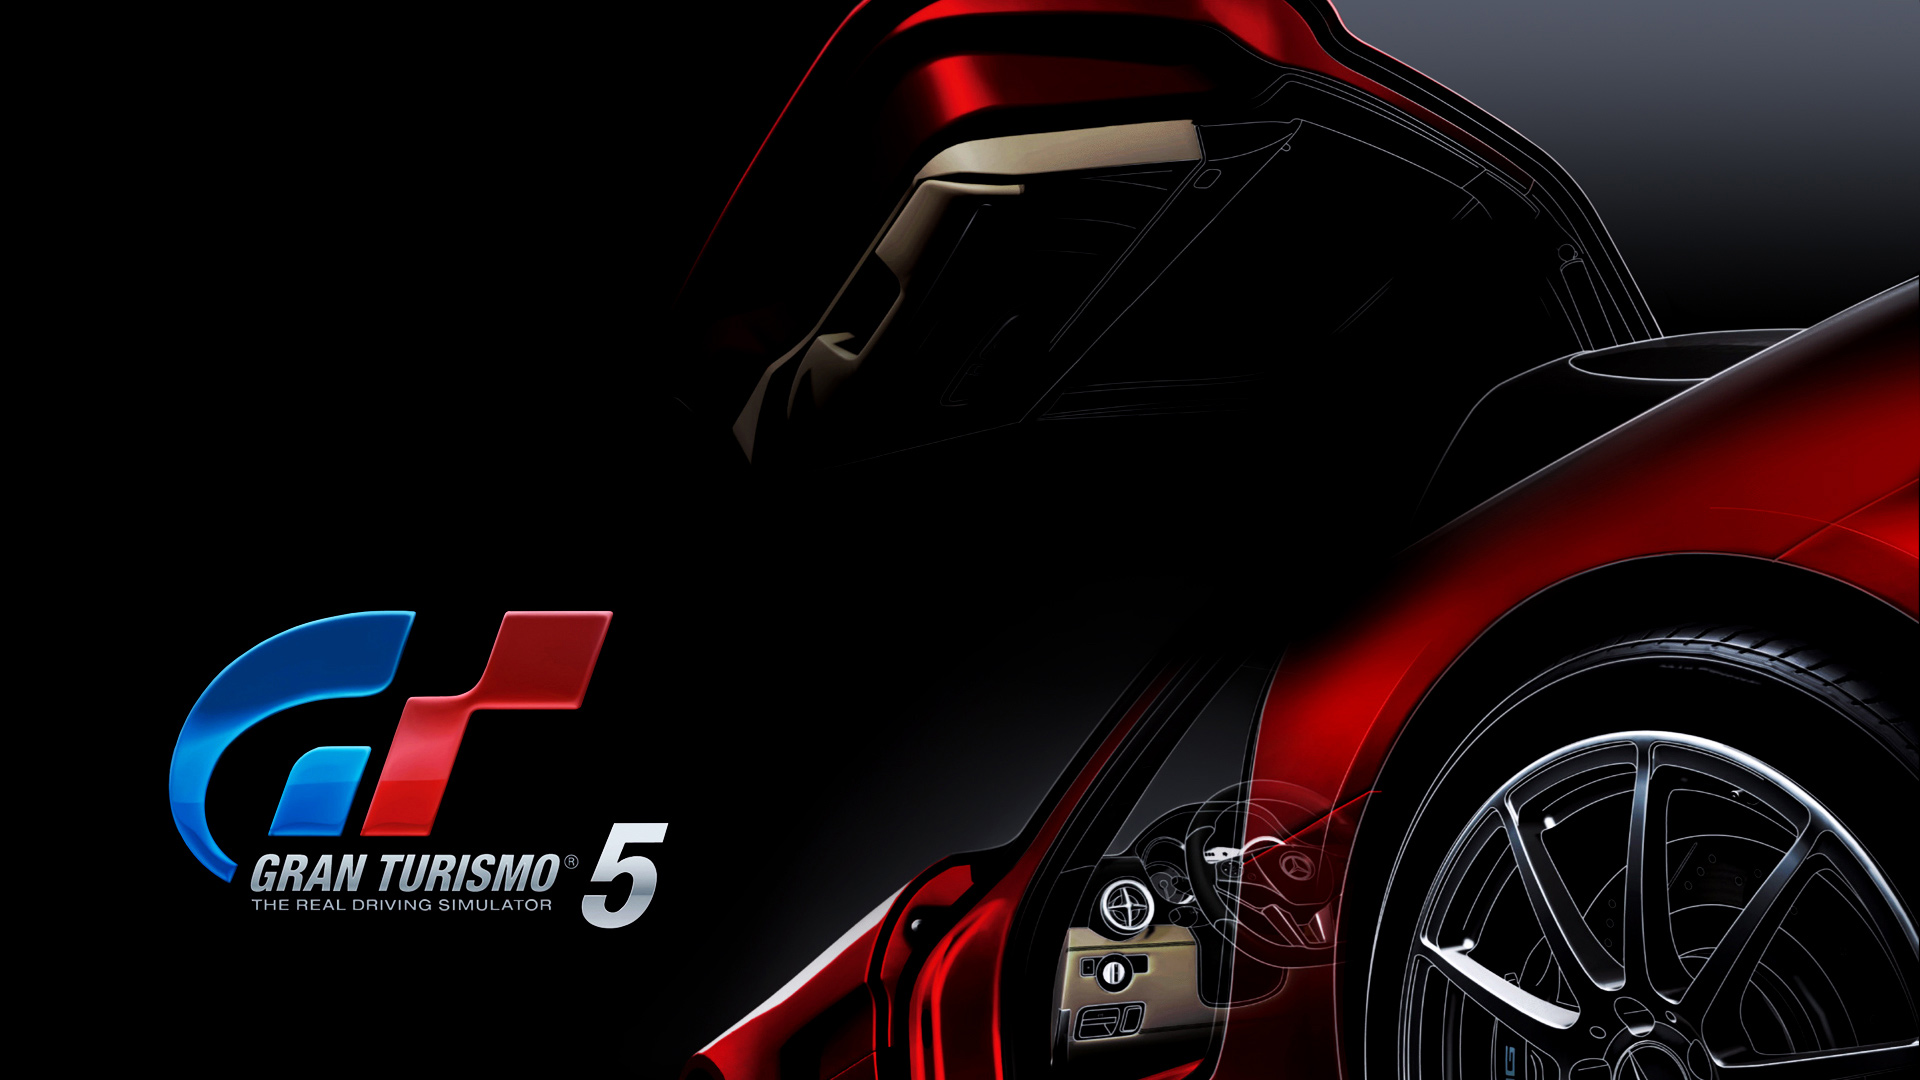 Gran turismo 5 wallpapers pictures images gran turismo 5 full hd wallpaper 1920x1080 publicscrutiny Image collections